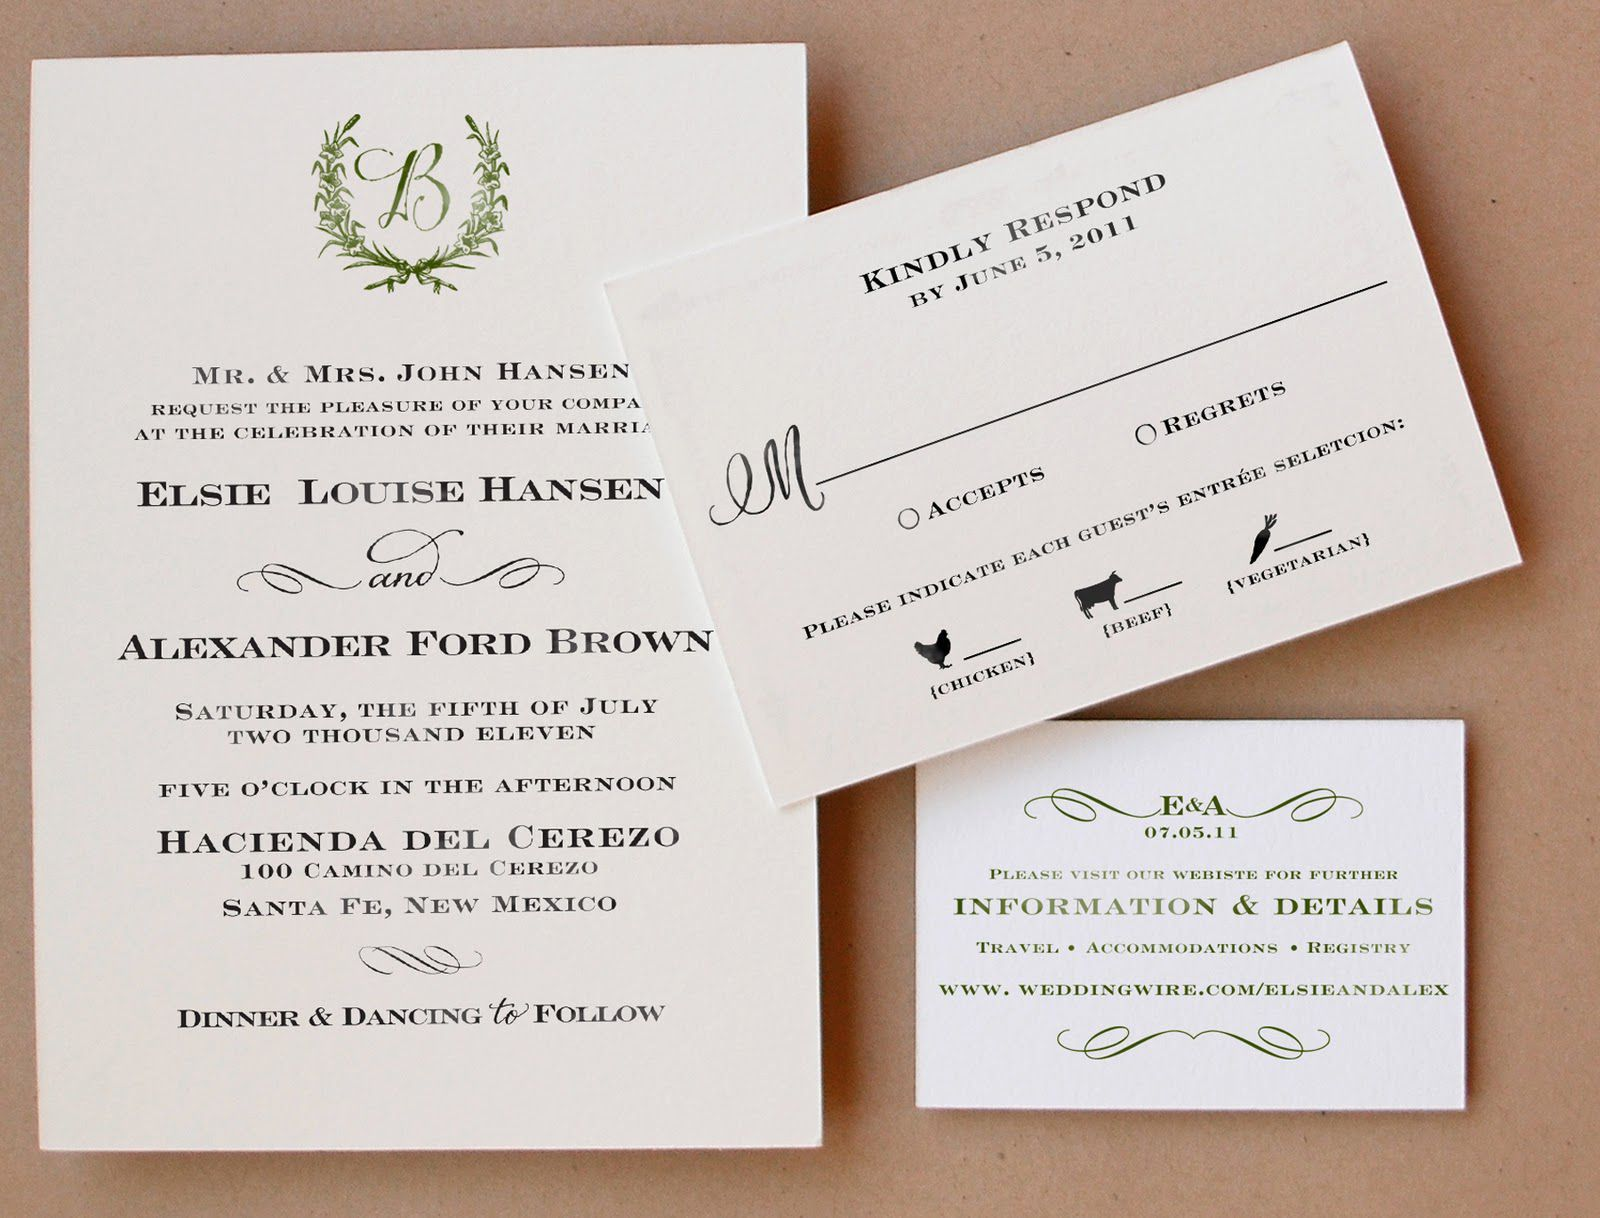 Wedding Invitation Wording Ideas: Wedding Invitation Wording Dietary Requirements